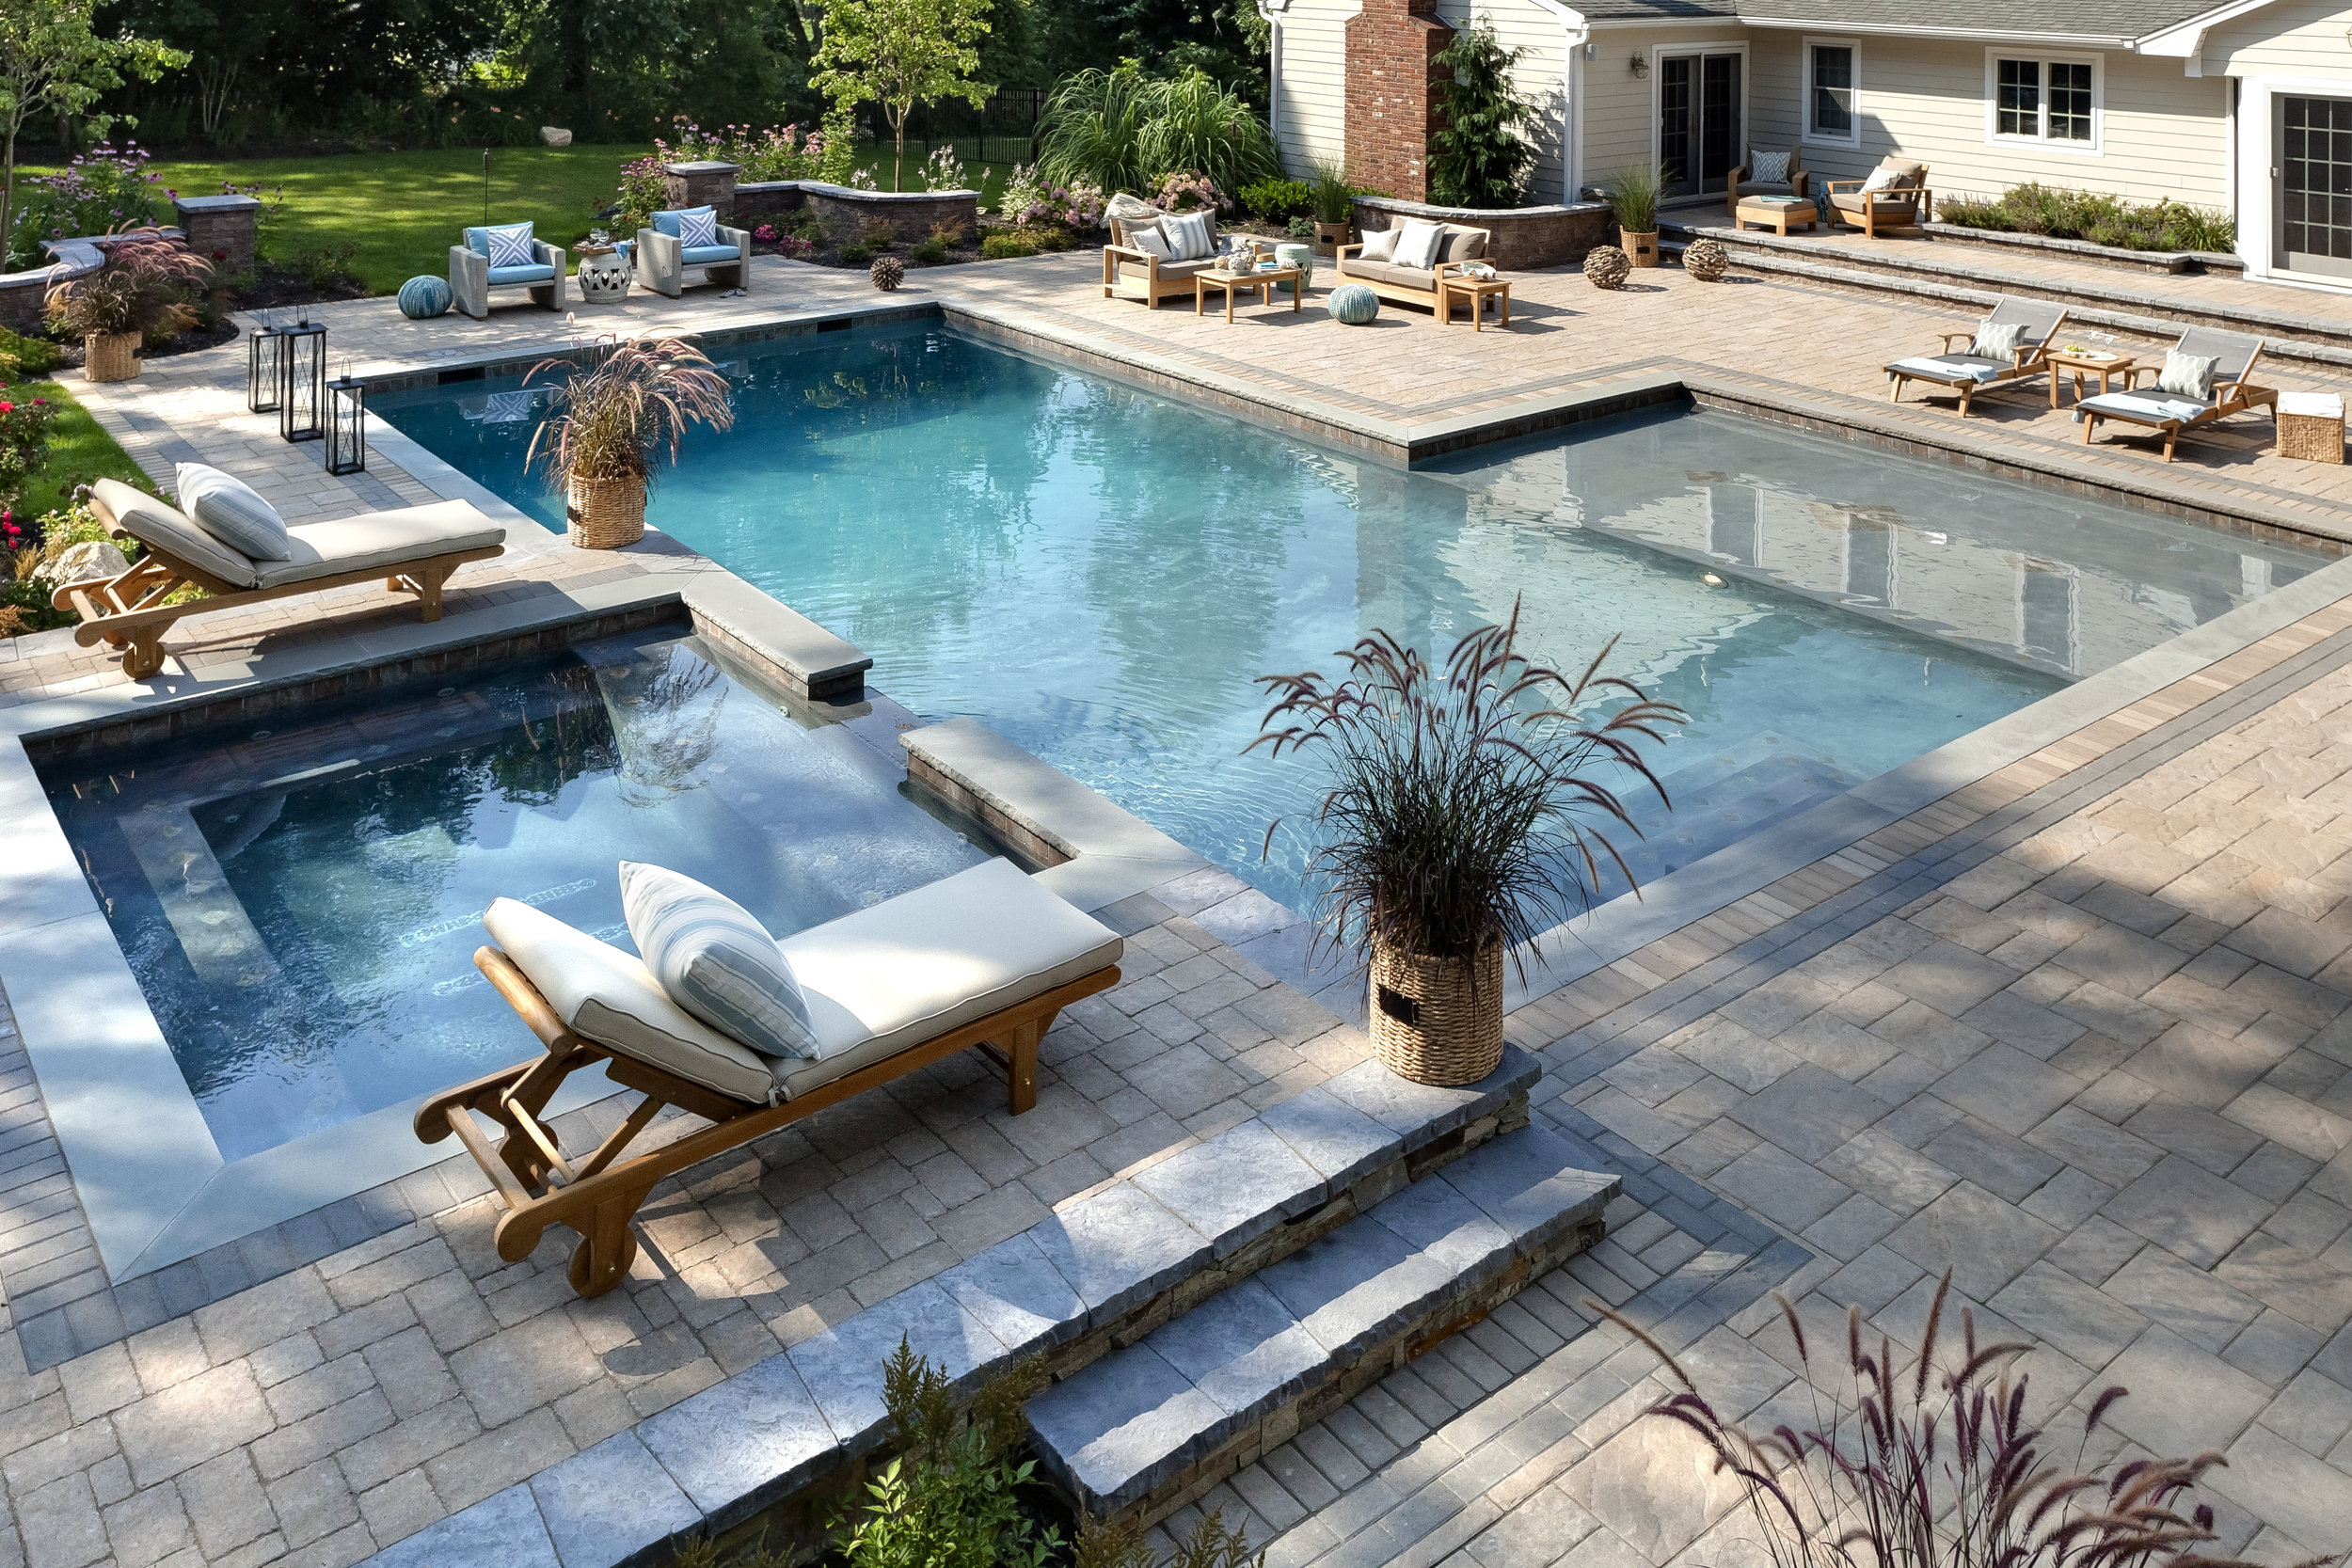 5 Luxurious Pool Trends From a Gunite Pool Builder